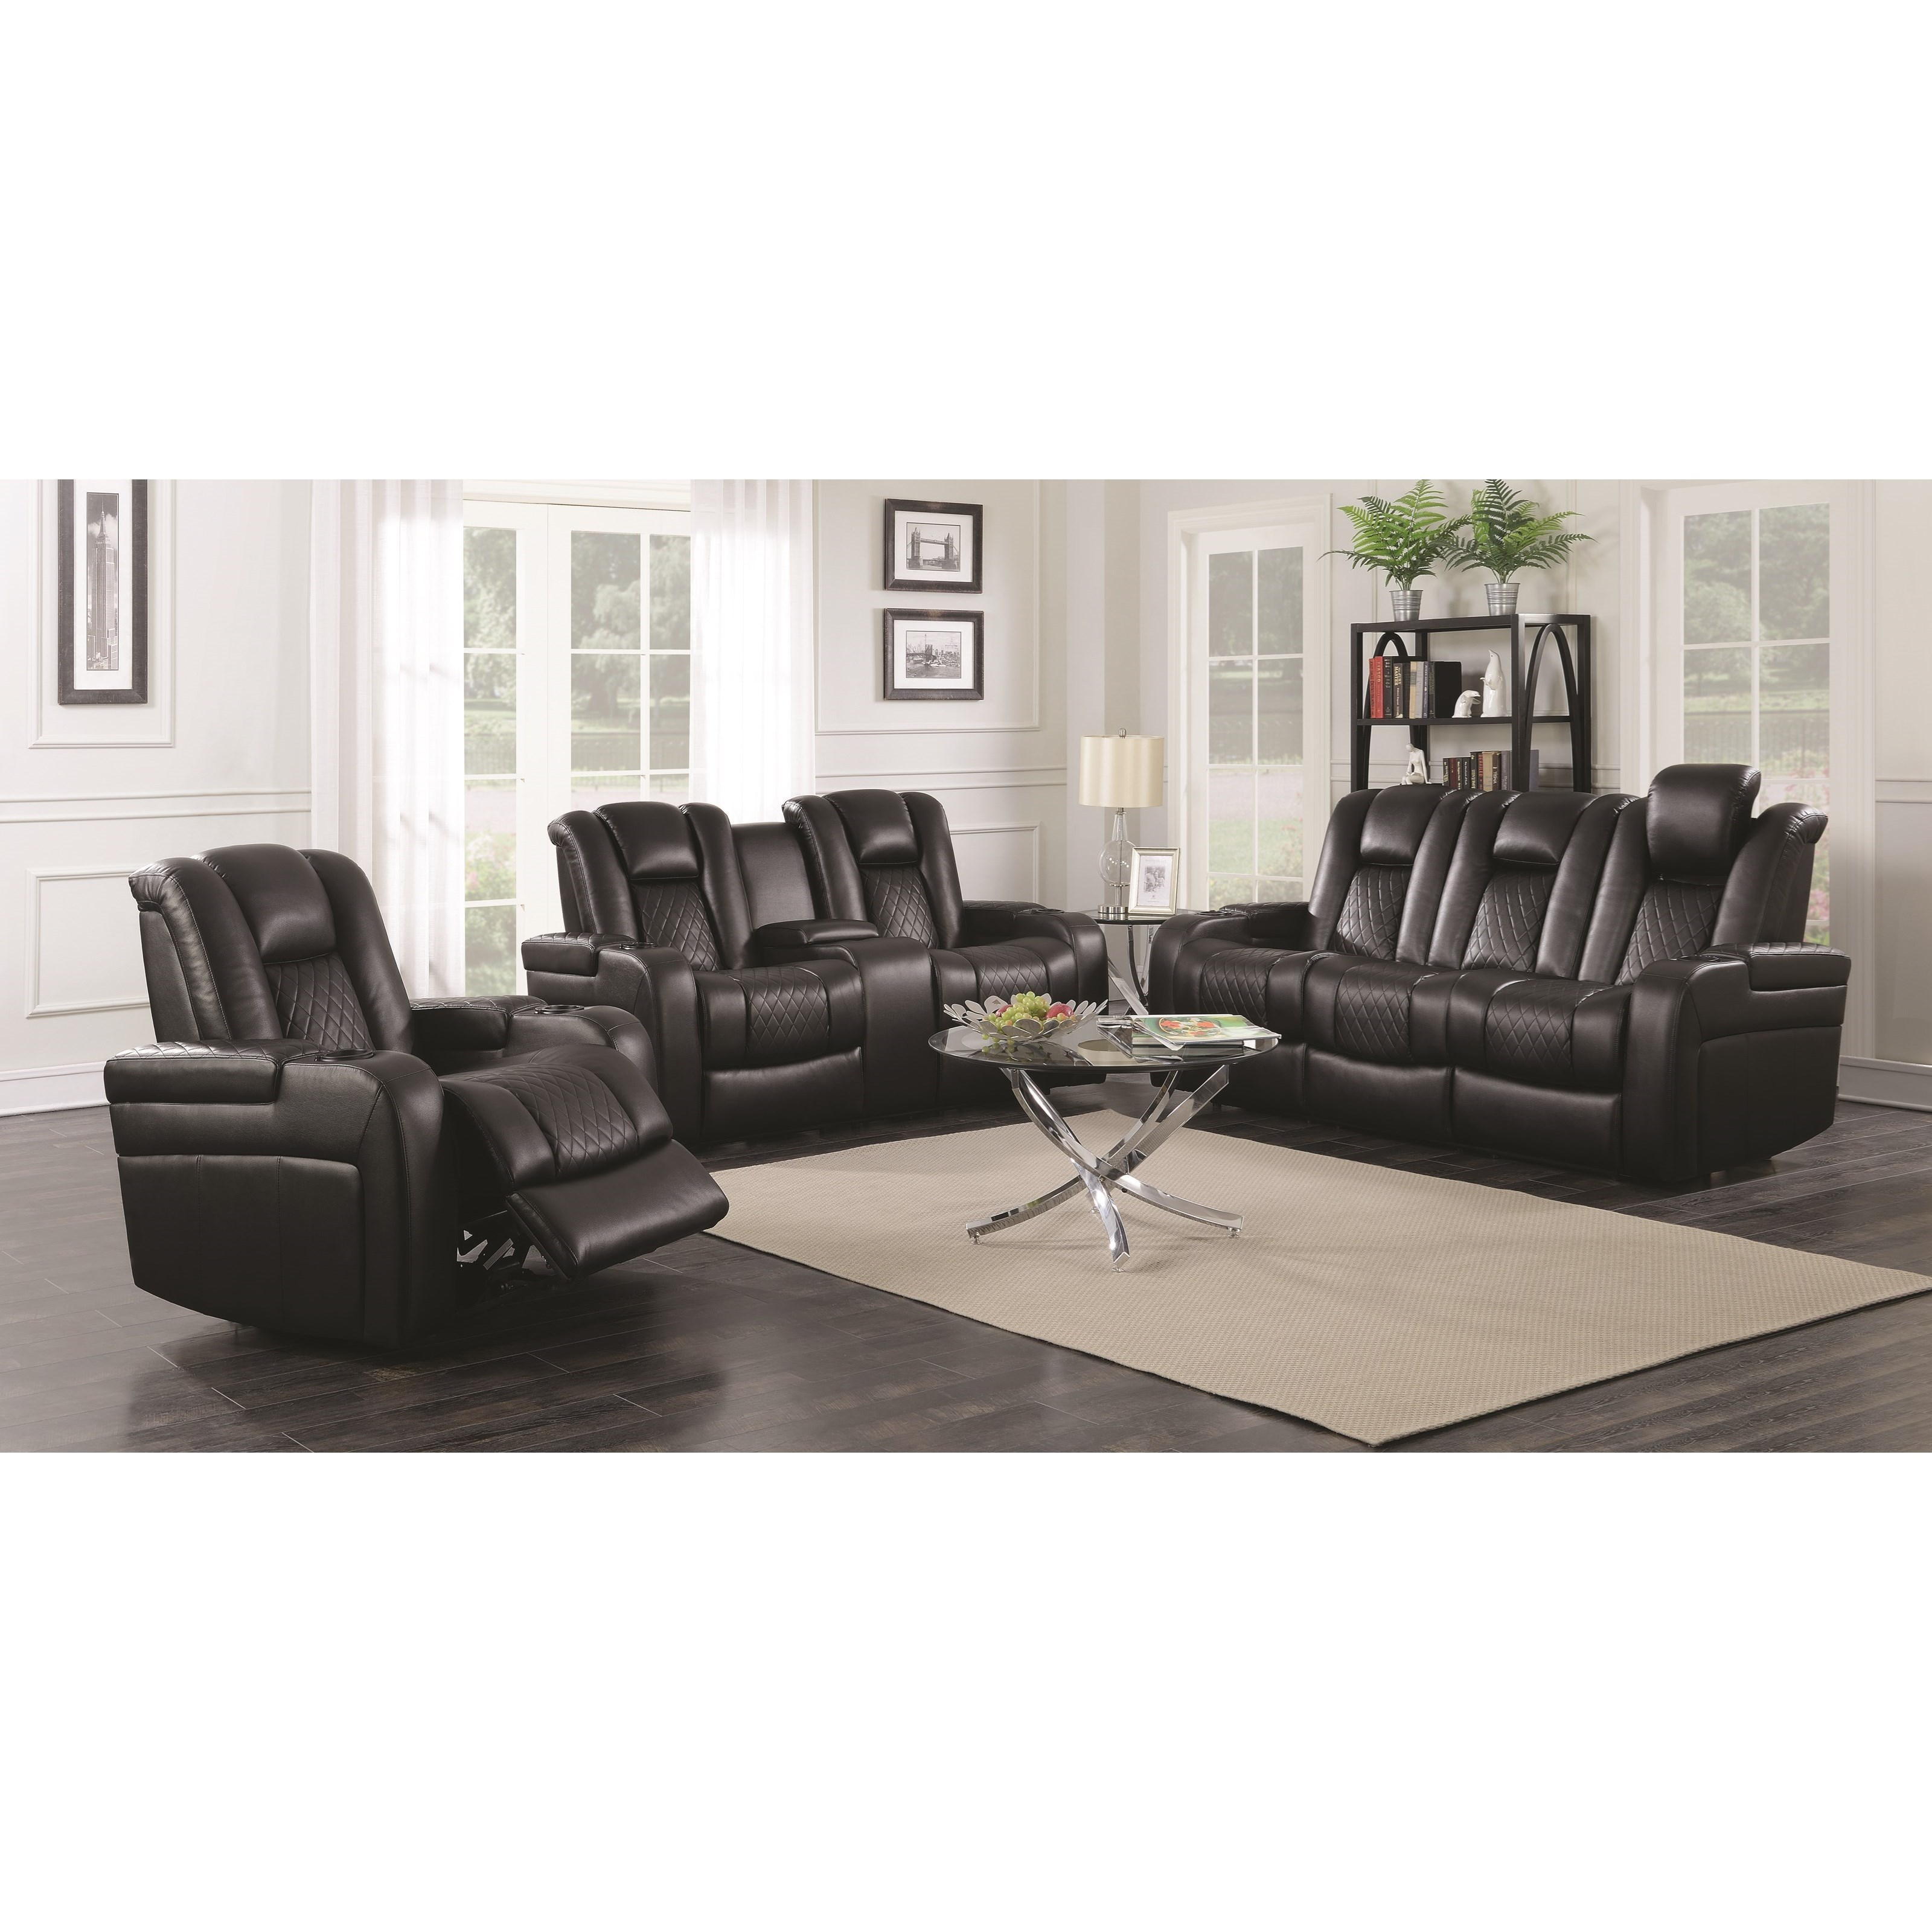 pop up recliner chairs girls bean bag reclining living room group delangelo by coaster wilcox